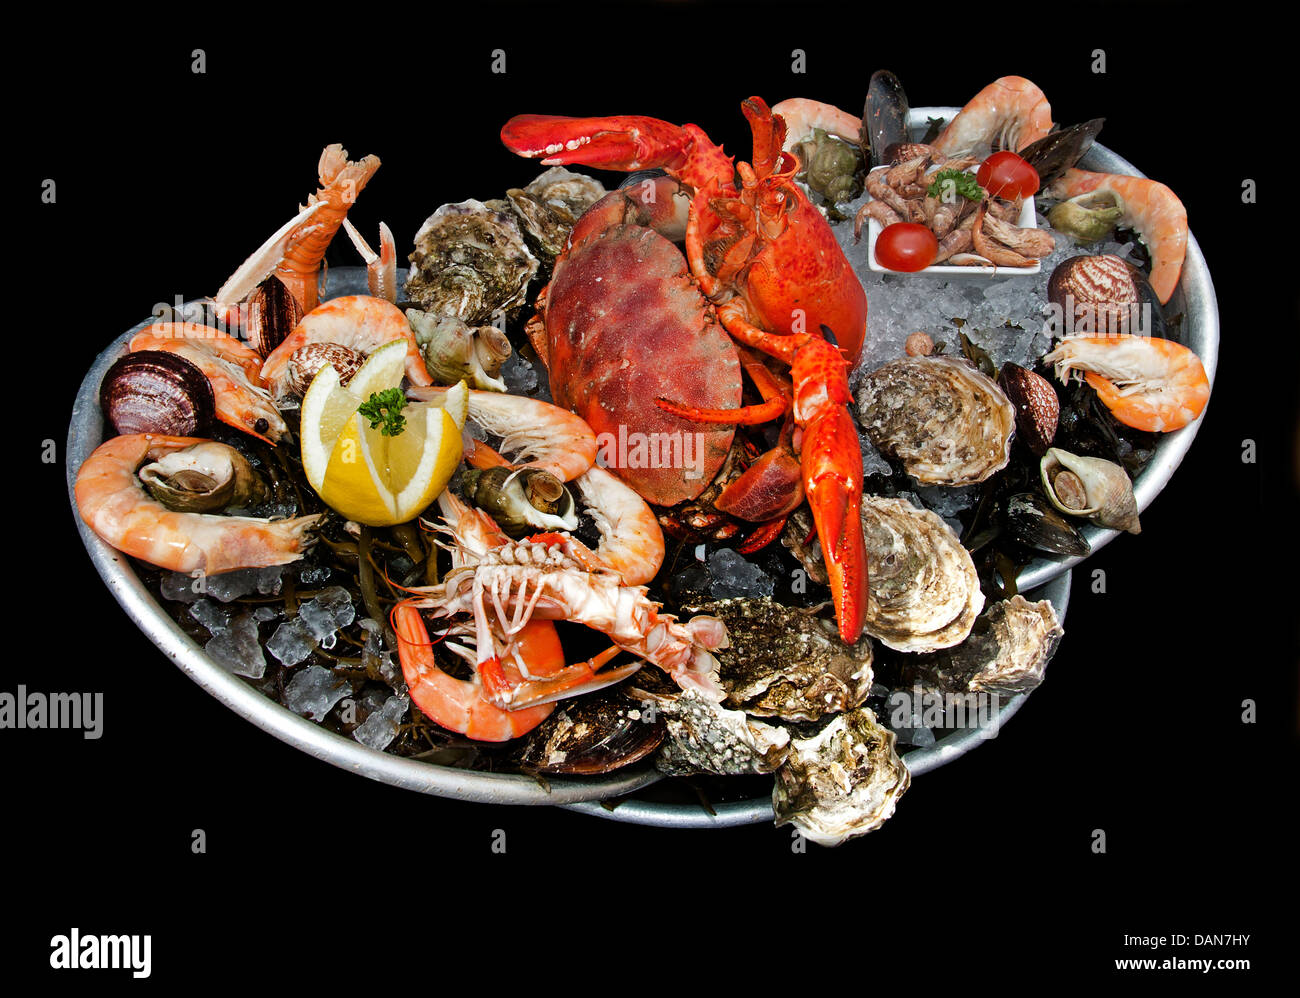 Fruits de mer French seafood Oysters Shrimp Lobster Periwinkle Crab Prawns Langoustine Mussels Scallops Clams - Stock Image